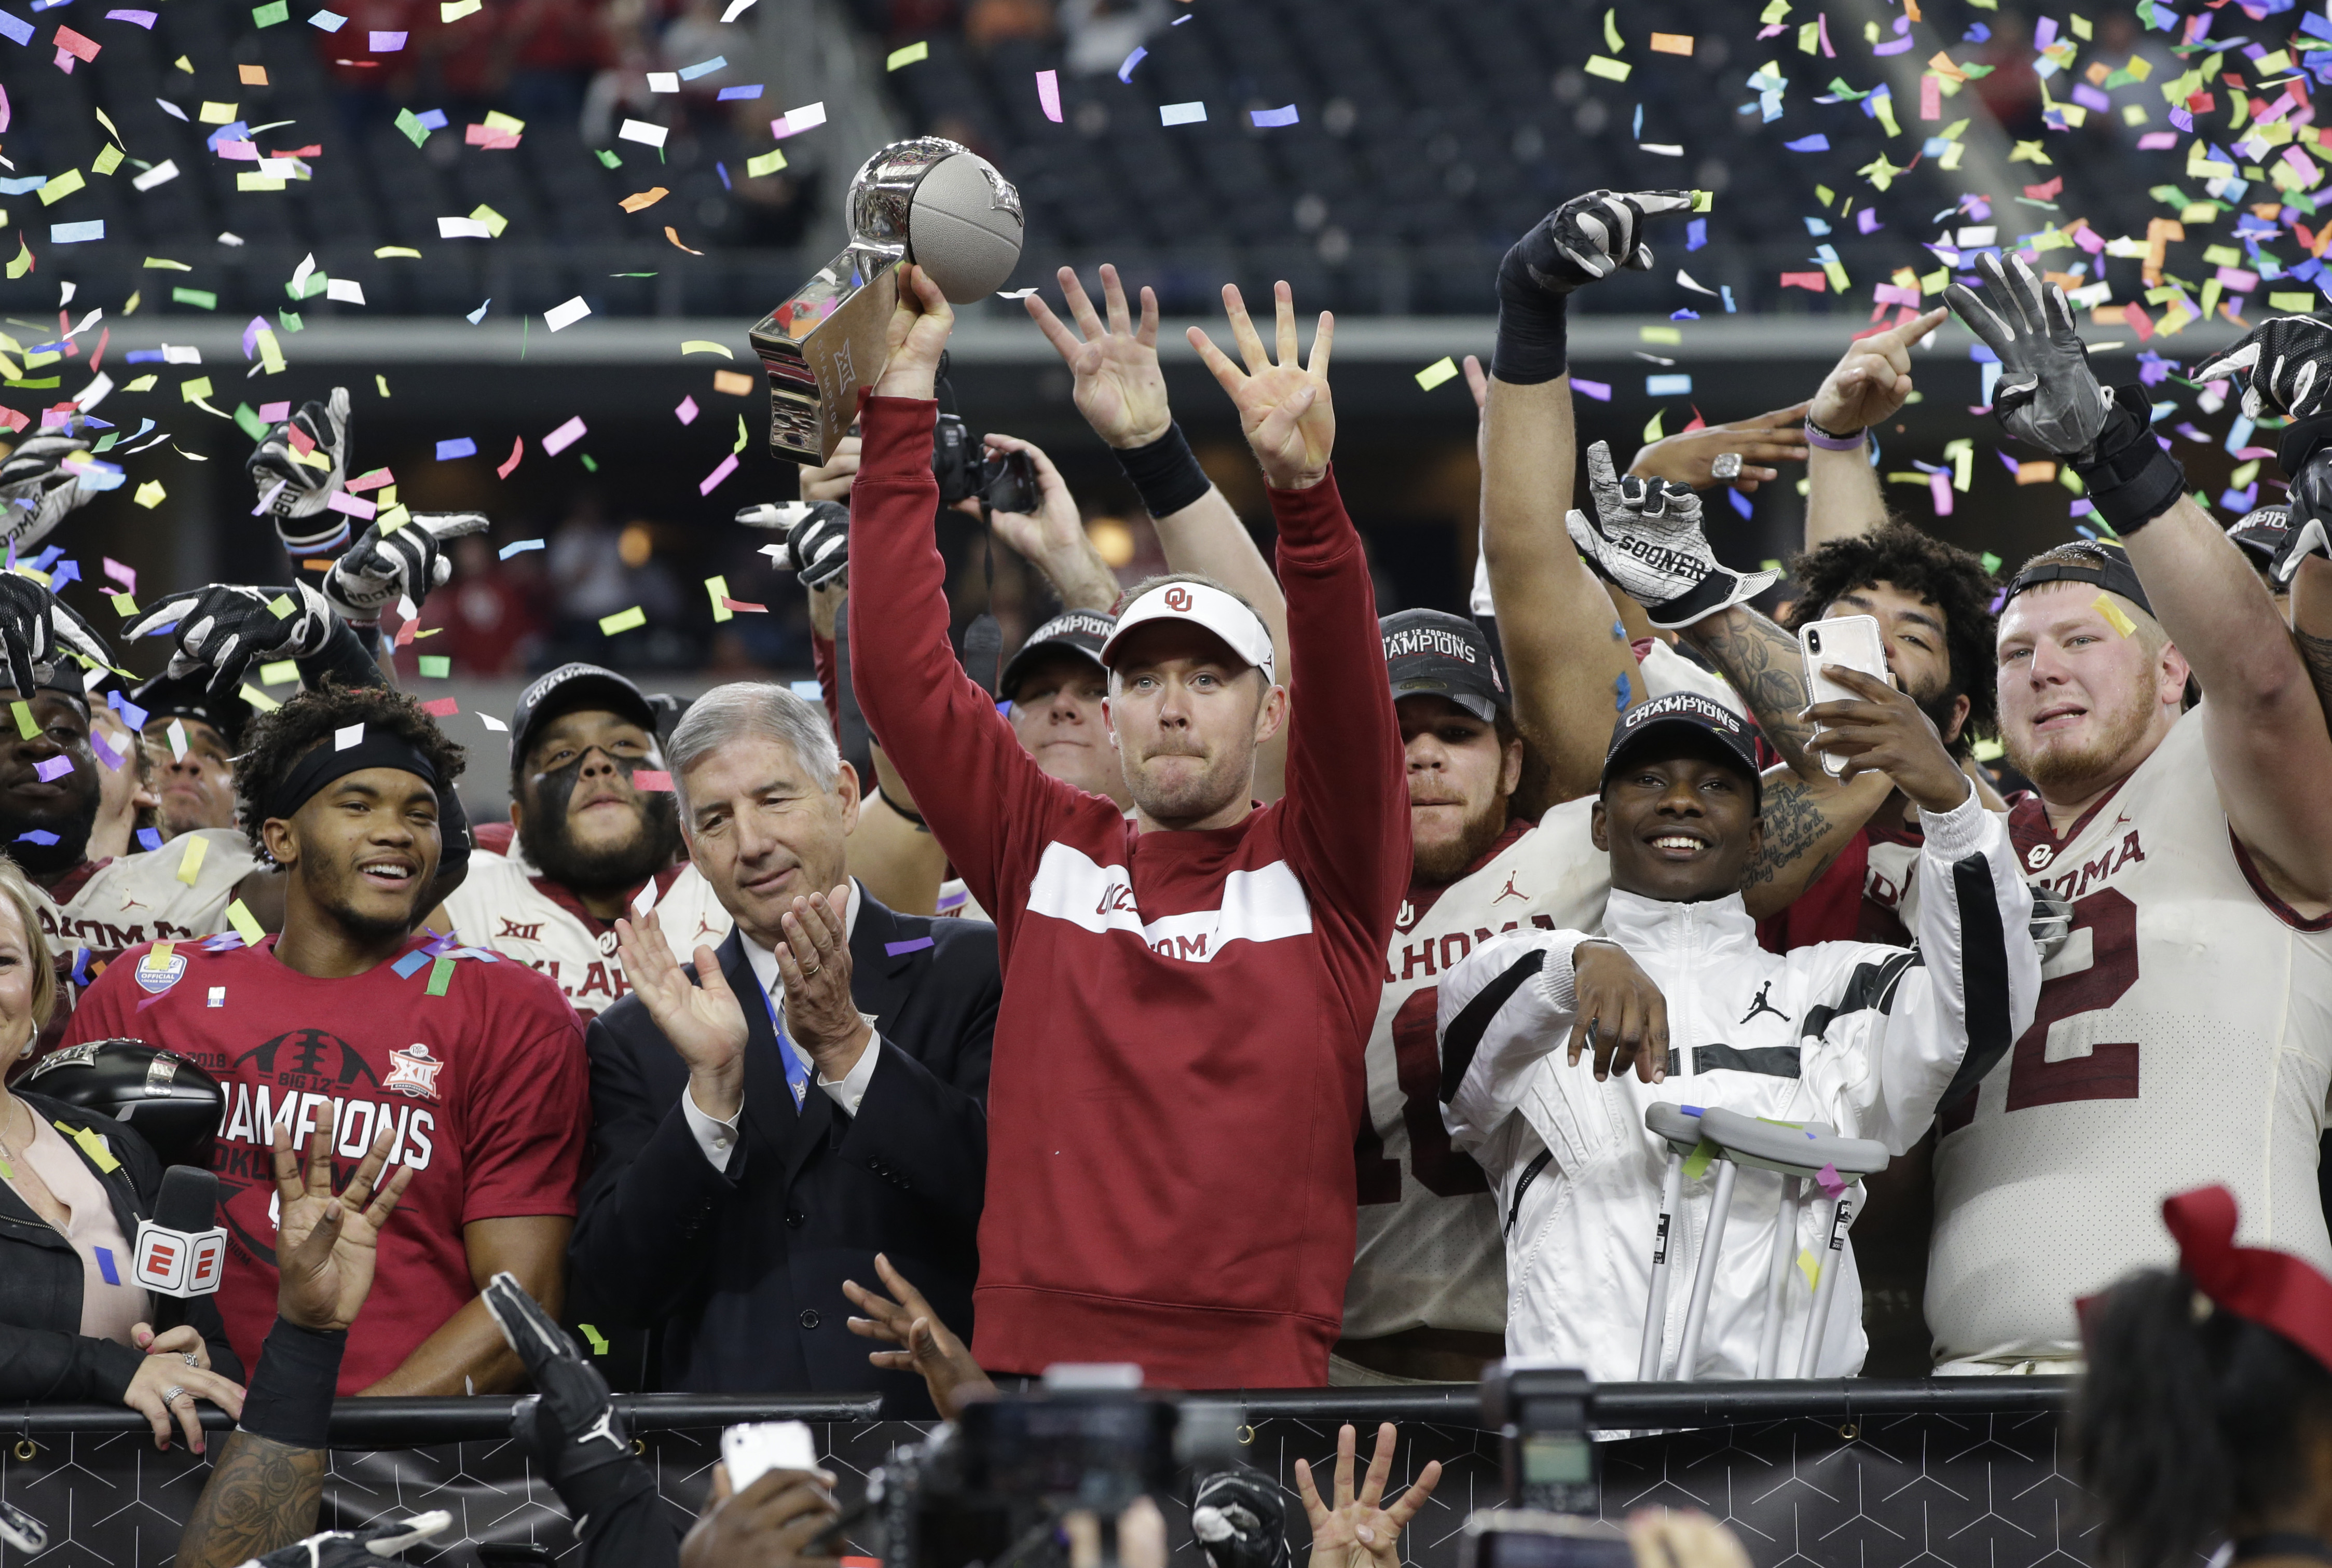 Dec 1, 2018; Arlington, TX, USA; Oklahoma Sooners head coach Lincoln Riley holds up the championship trophy after the game against the Texas Longhorns in the Big 12 championship game at AT&T Stadium. Mandatory Credit: Tim Heitman-USA TODAY Sports